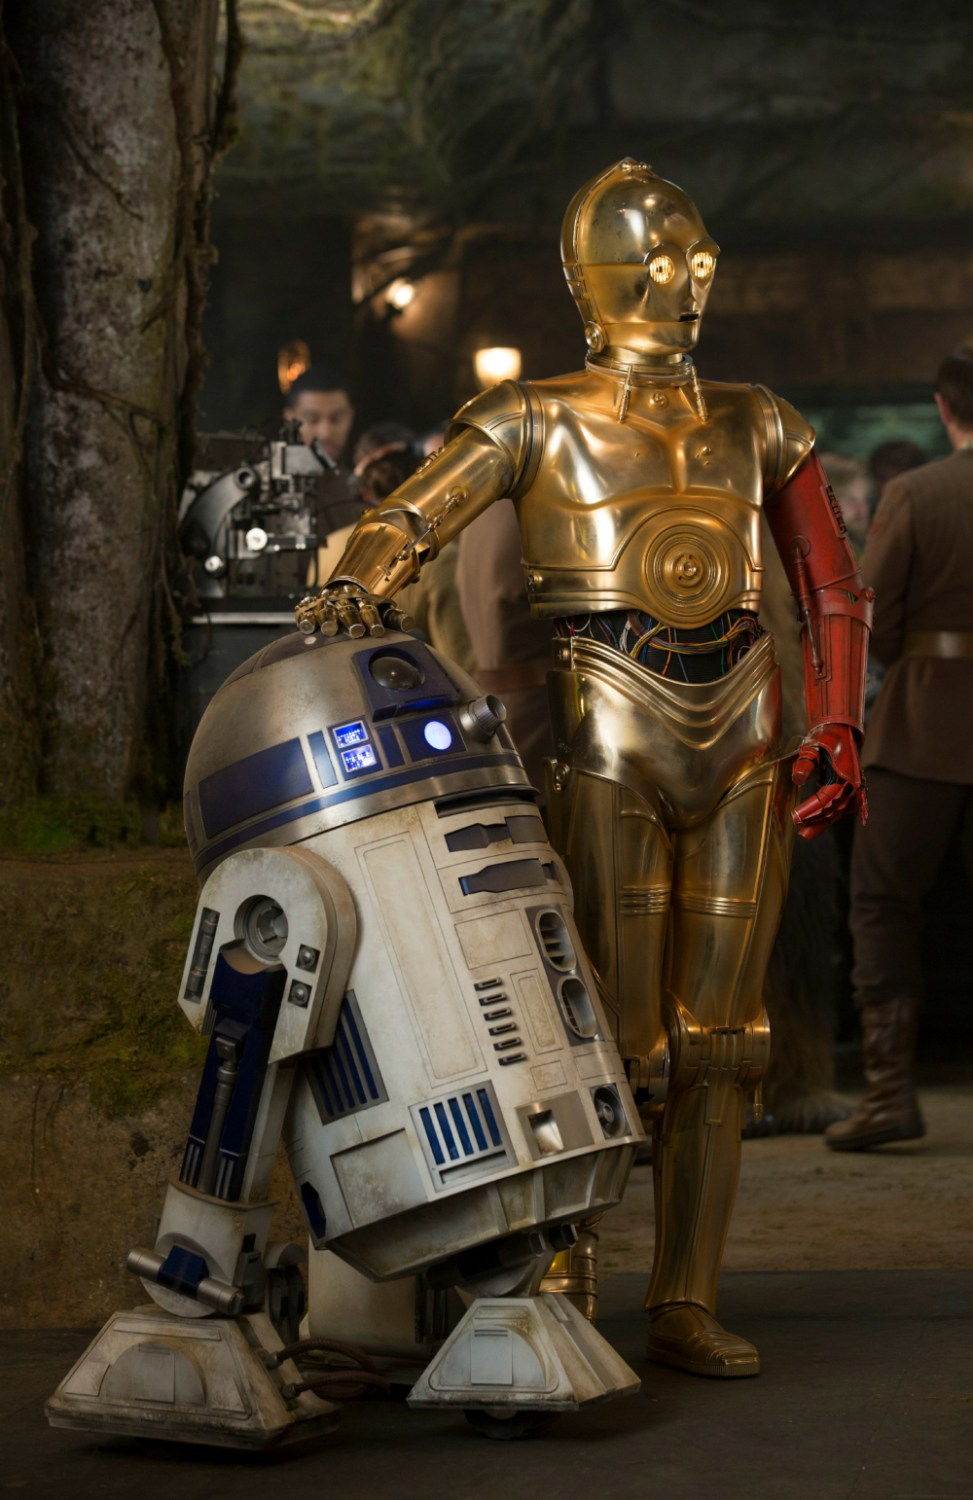 Star Wars: The Force Awakens - R2-D2 and C-3PO